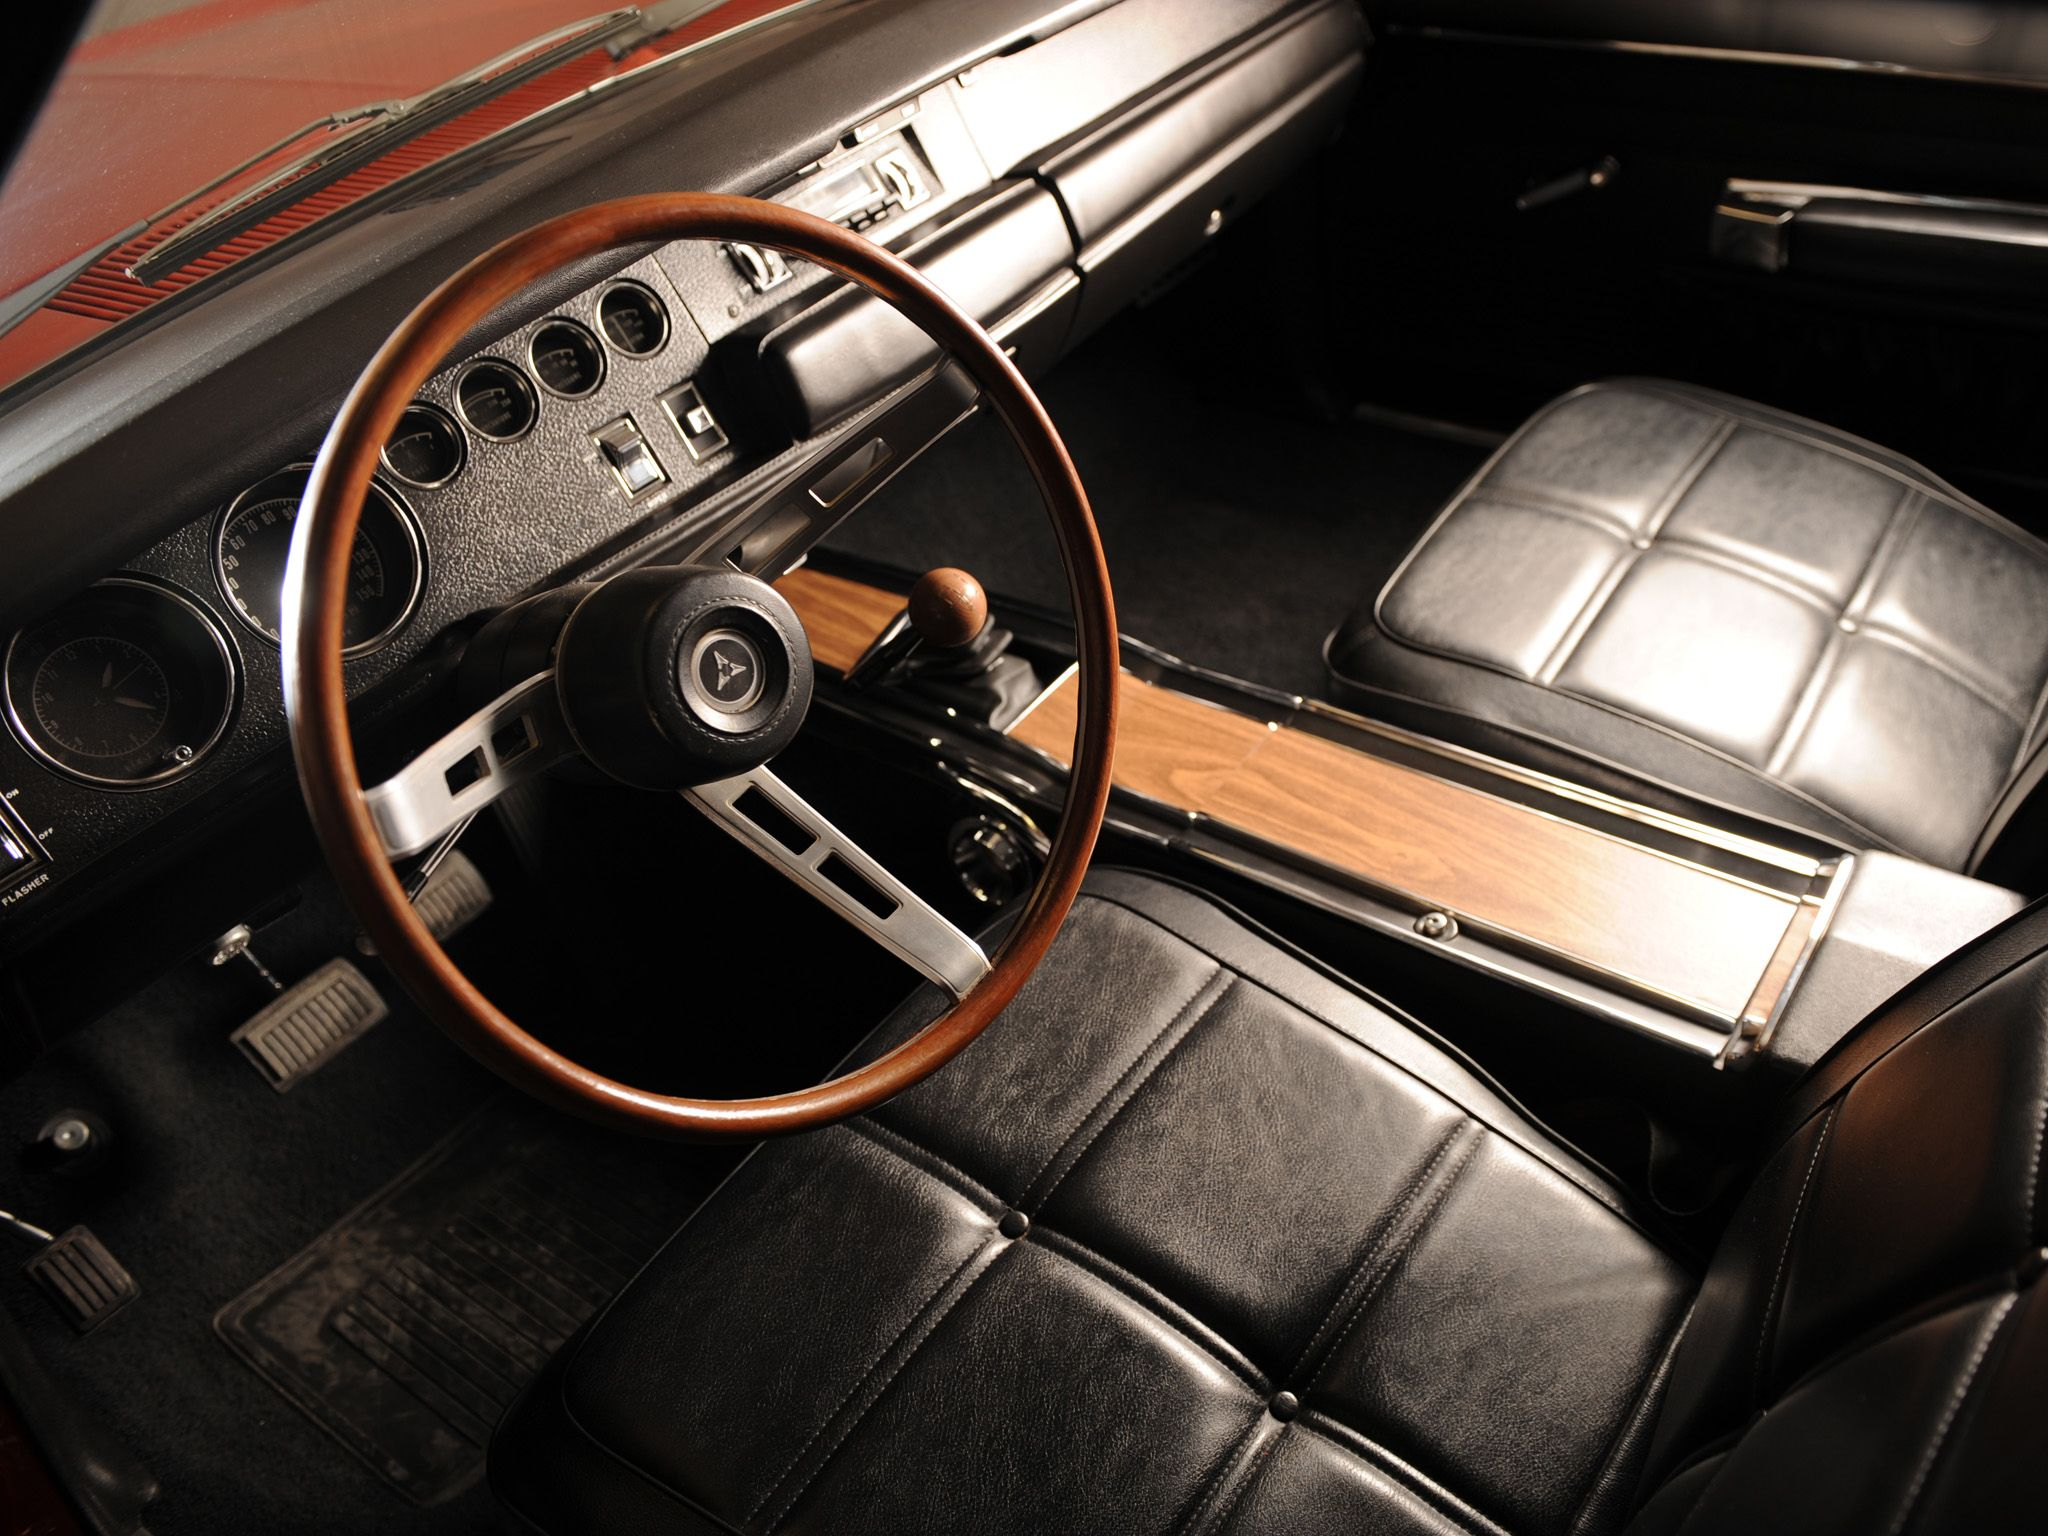 1969 Dodge Charger iPhone Wallpaper  image 131  TENTH PICK 1970